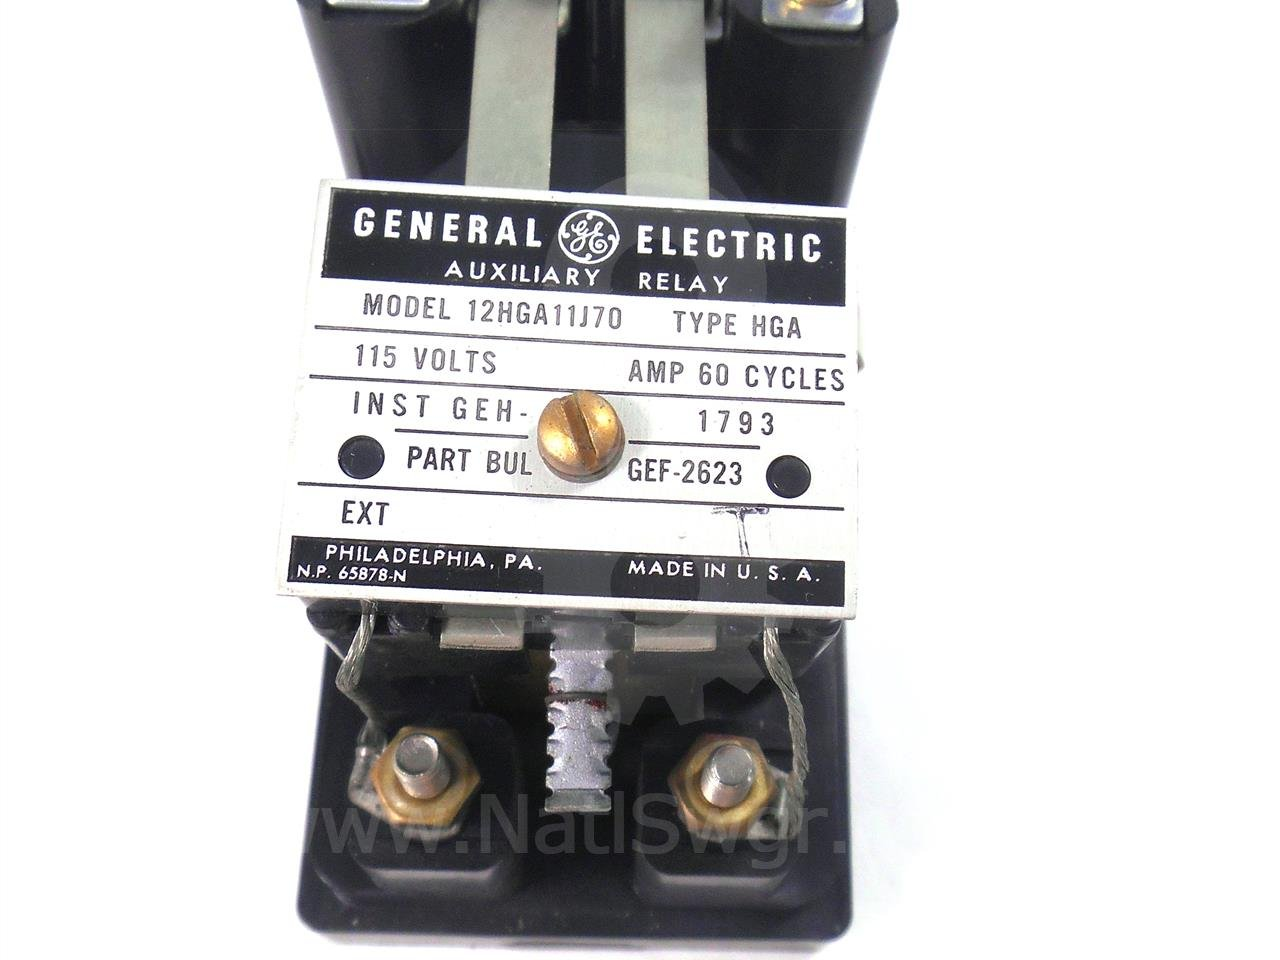 General Electric 12hga11j70 Auxiliary Relay Missing Cover Used Electrical For U Electronic Components Industrial Scientific